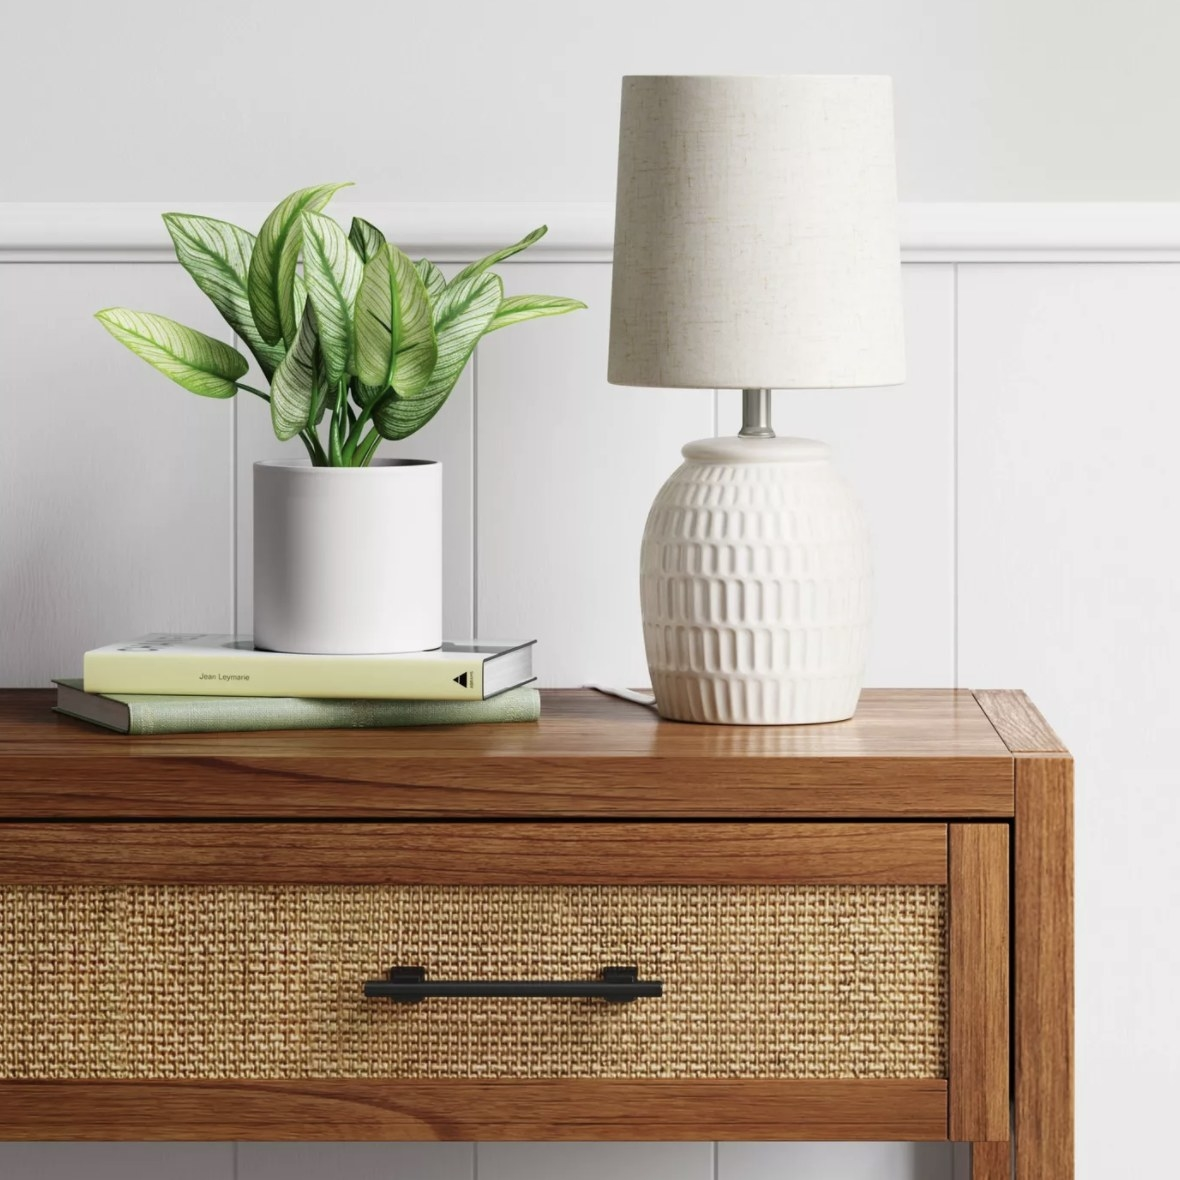 The white lamp has rectangular divets scooped out and has a linen-looking shade